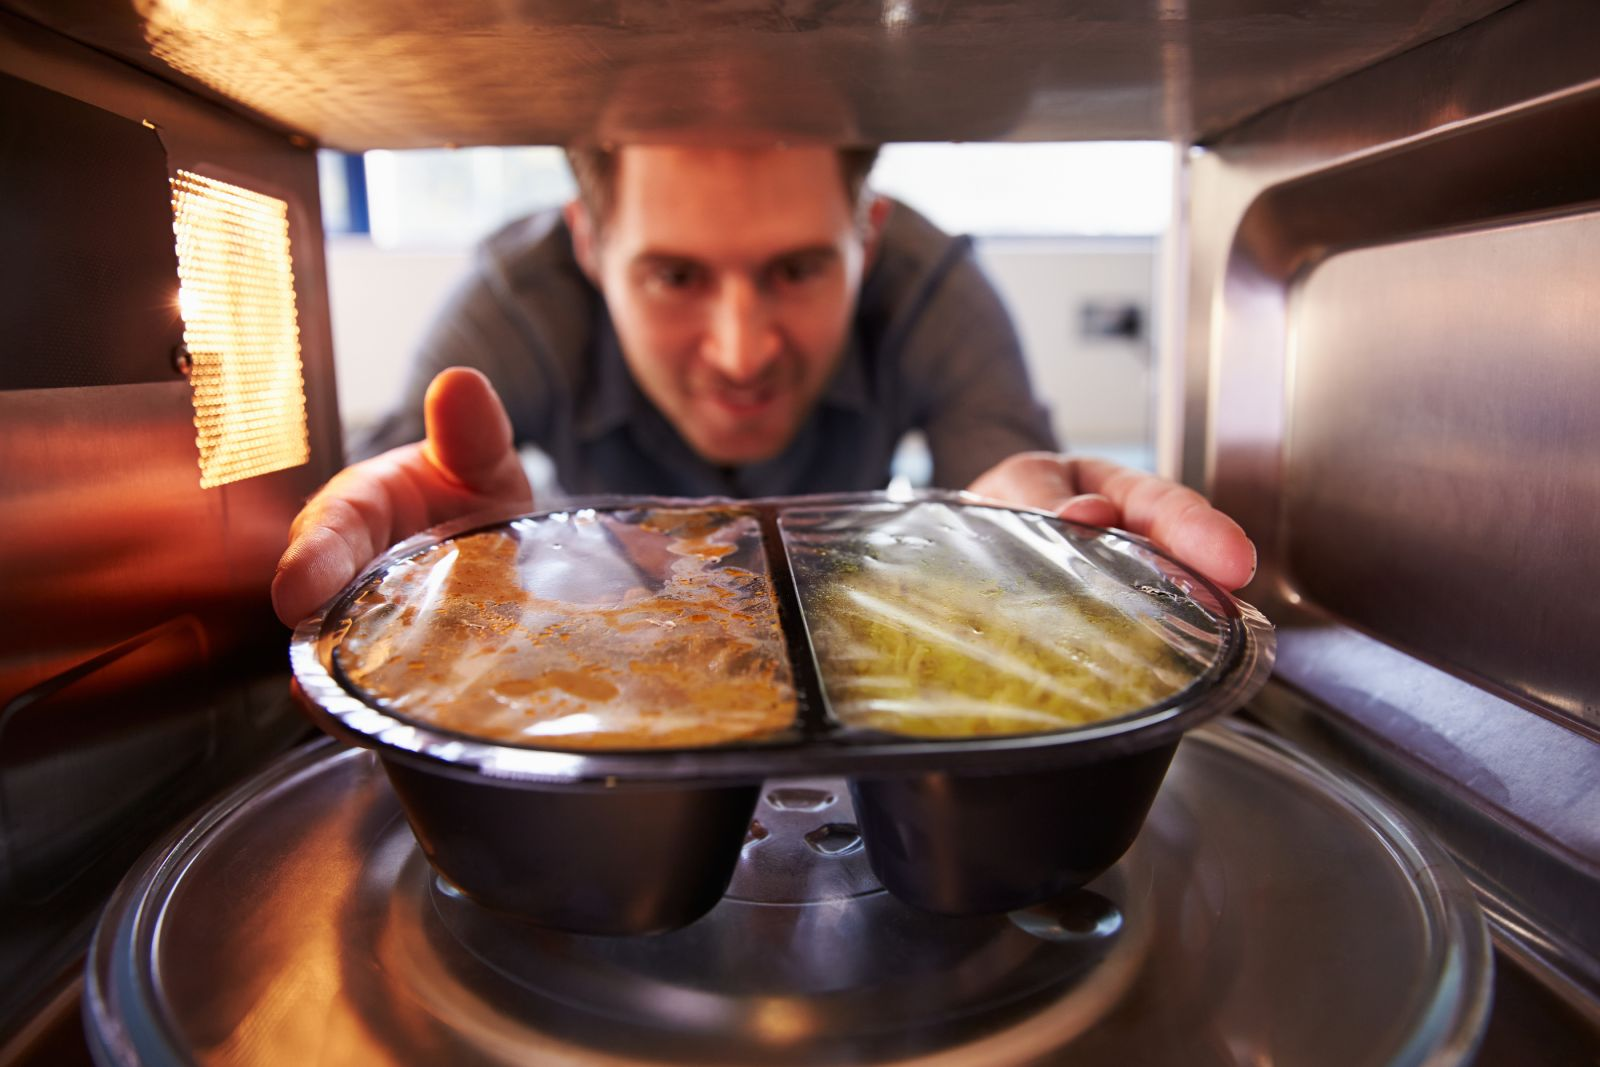 Is it bad to microwave food?